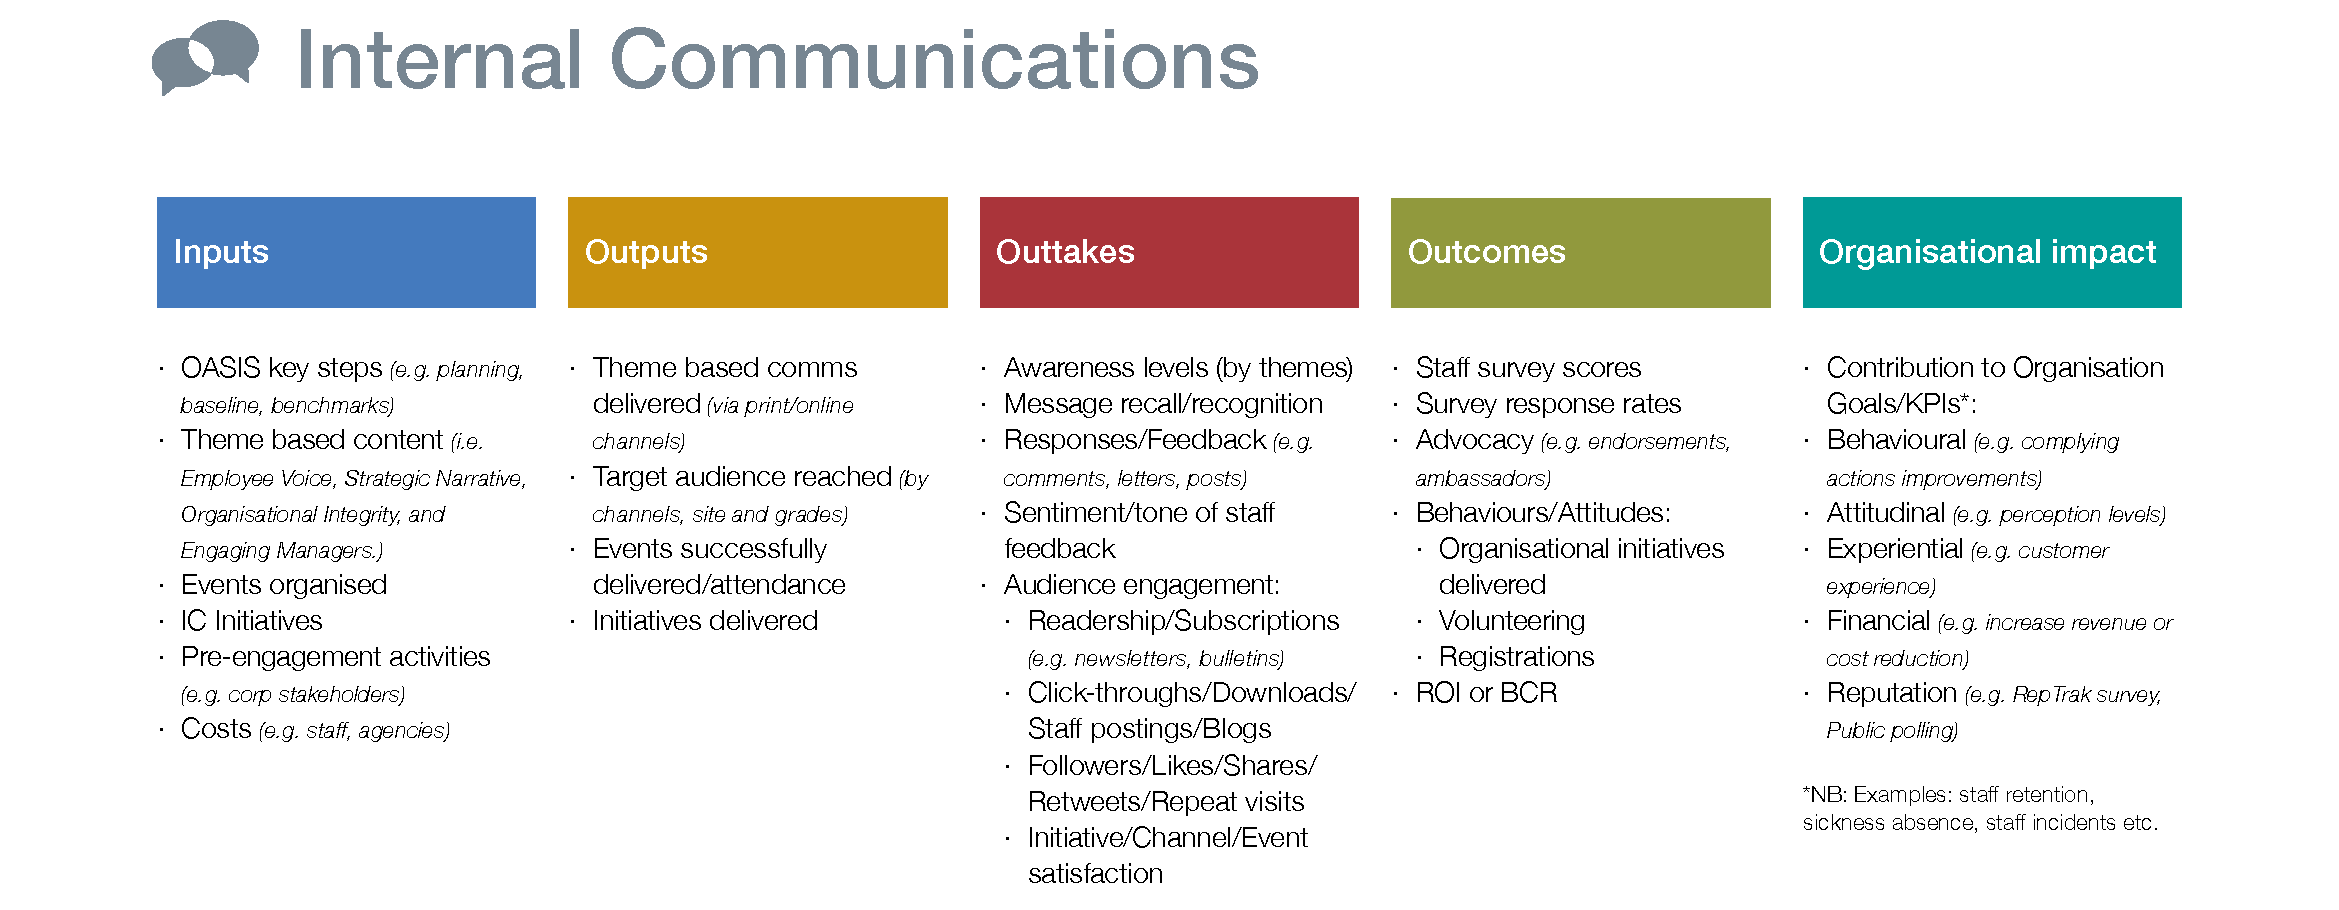 Inputs Outputs Outcomes Internal